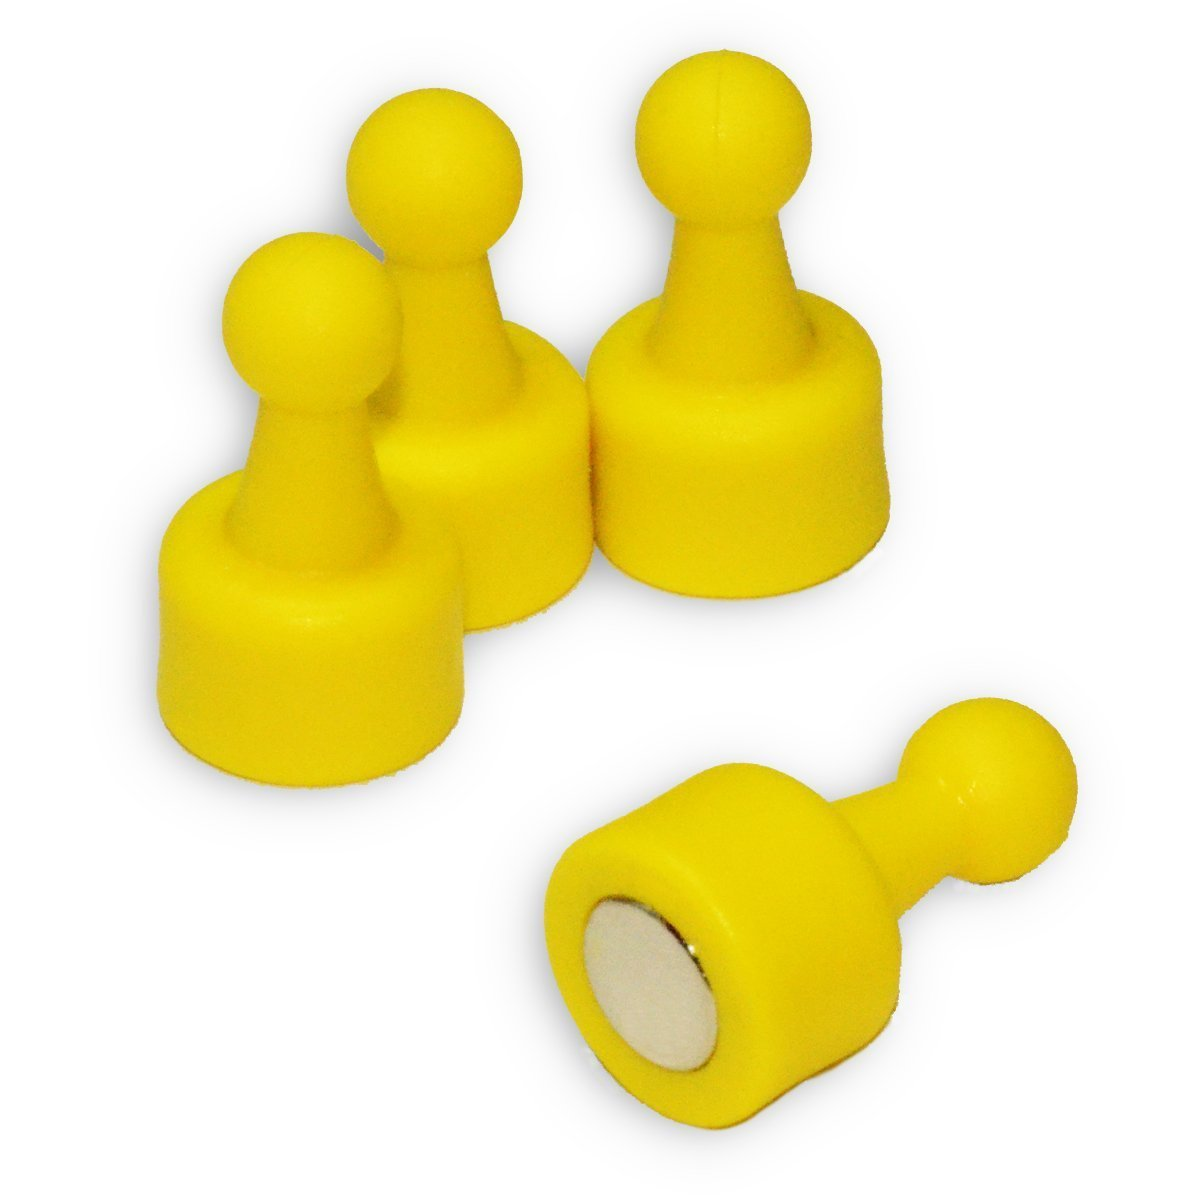 24 Ct. NeoPin® Yellow Magnetic Push Pins - Super Strong Neodymium Magnets. Great for Magnetic Whiteboards, Refrigerators, other Applications